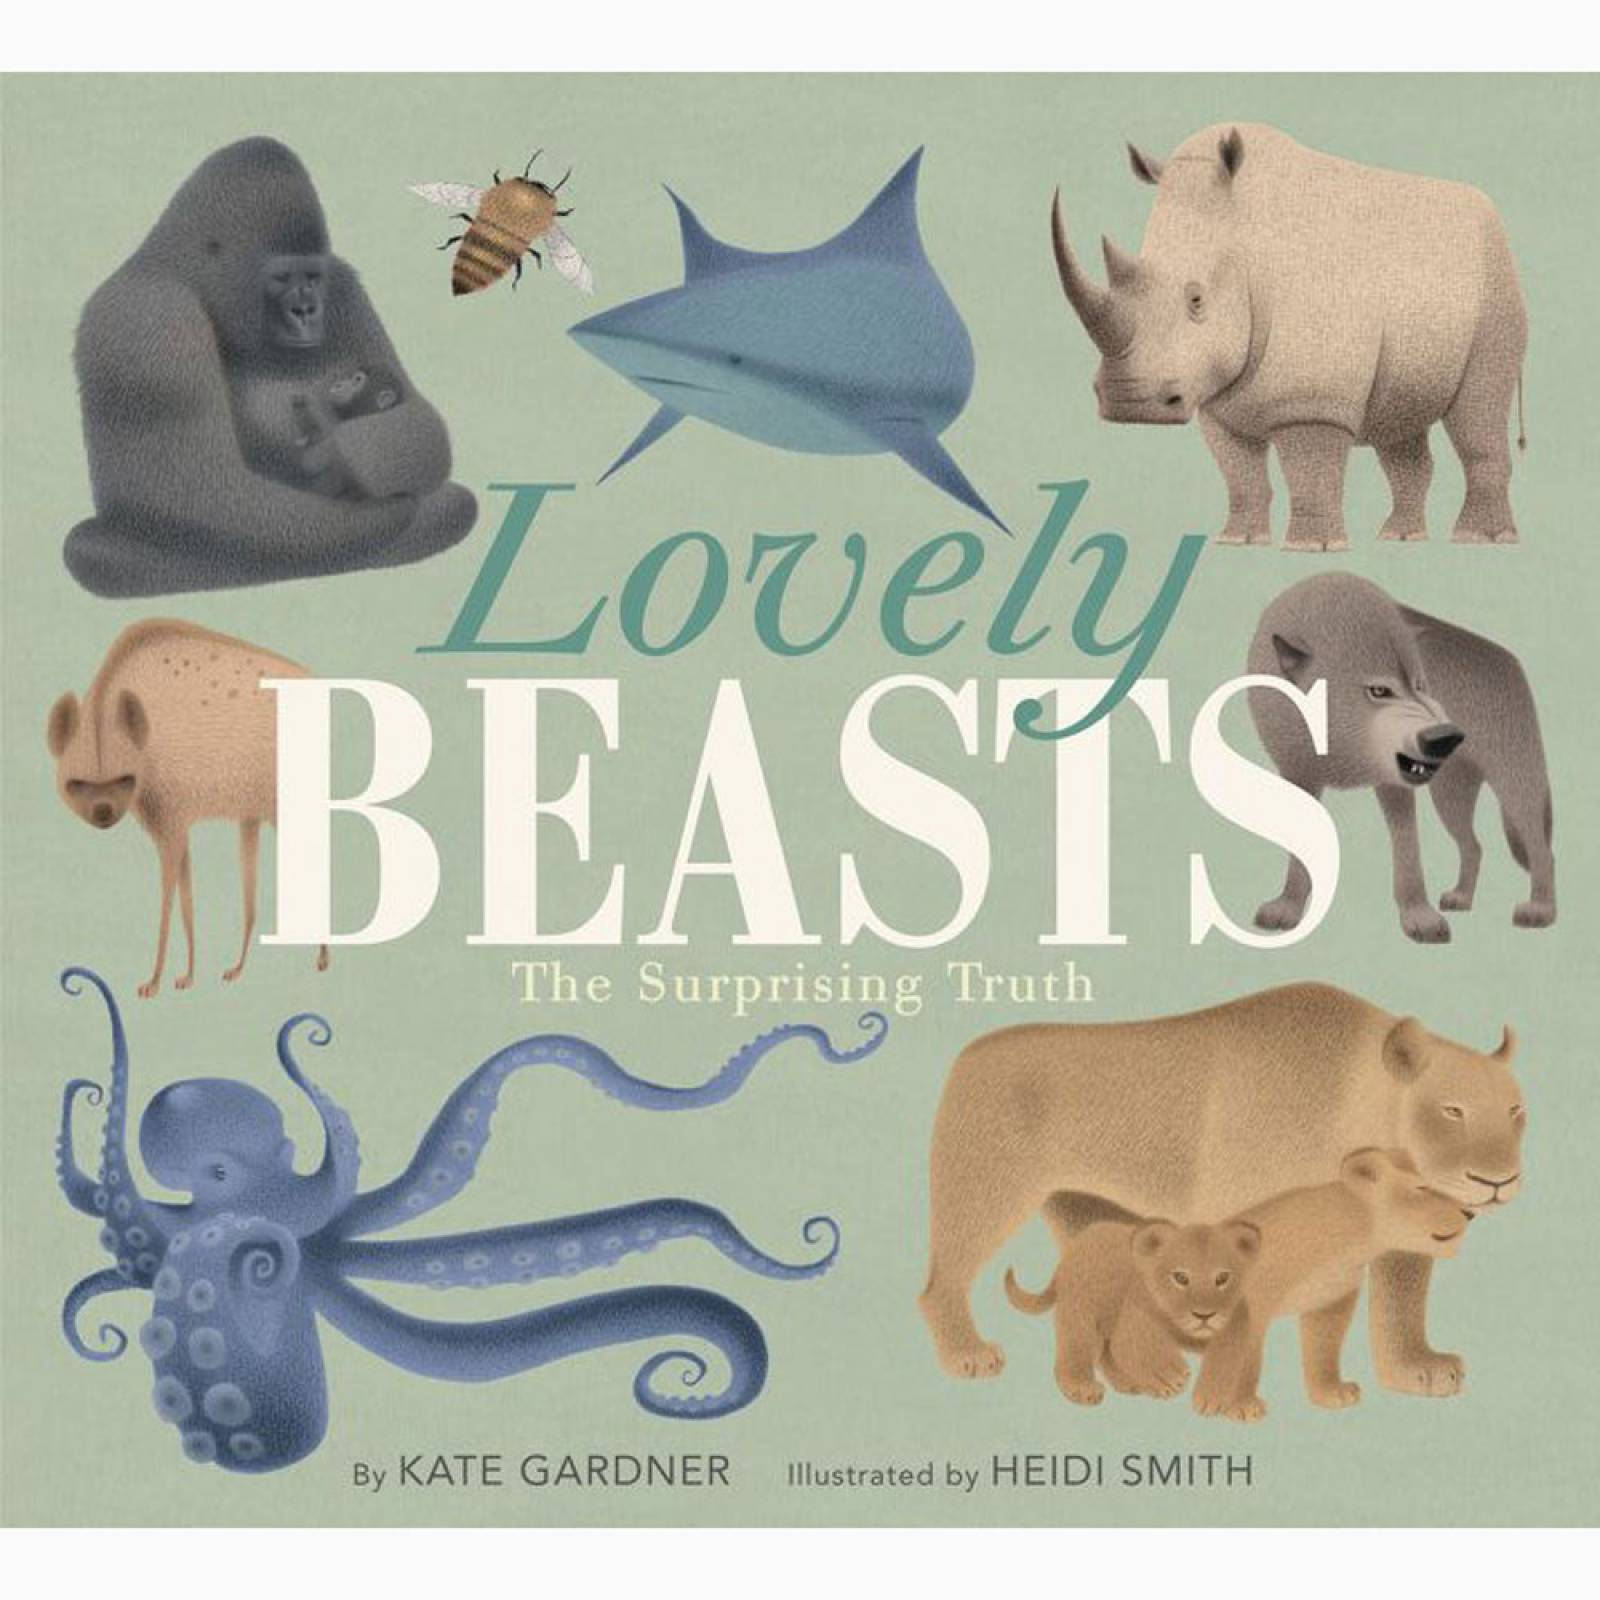 Lovely Beasts: The Surprising Truth - Hardback Book thumbnails